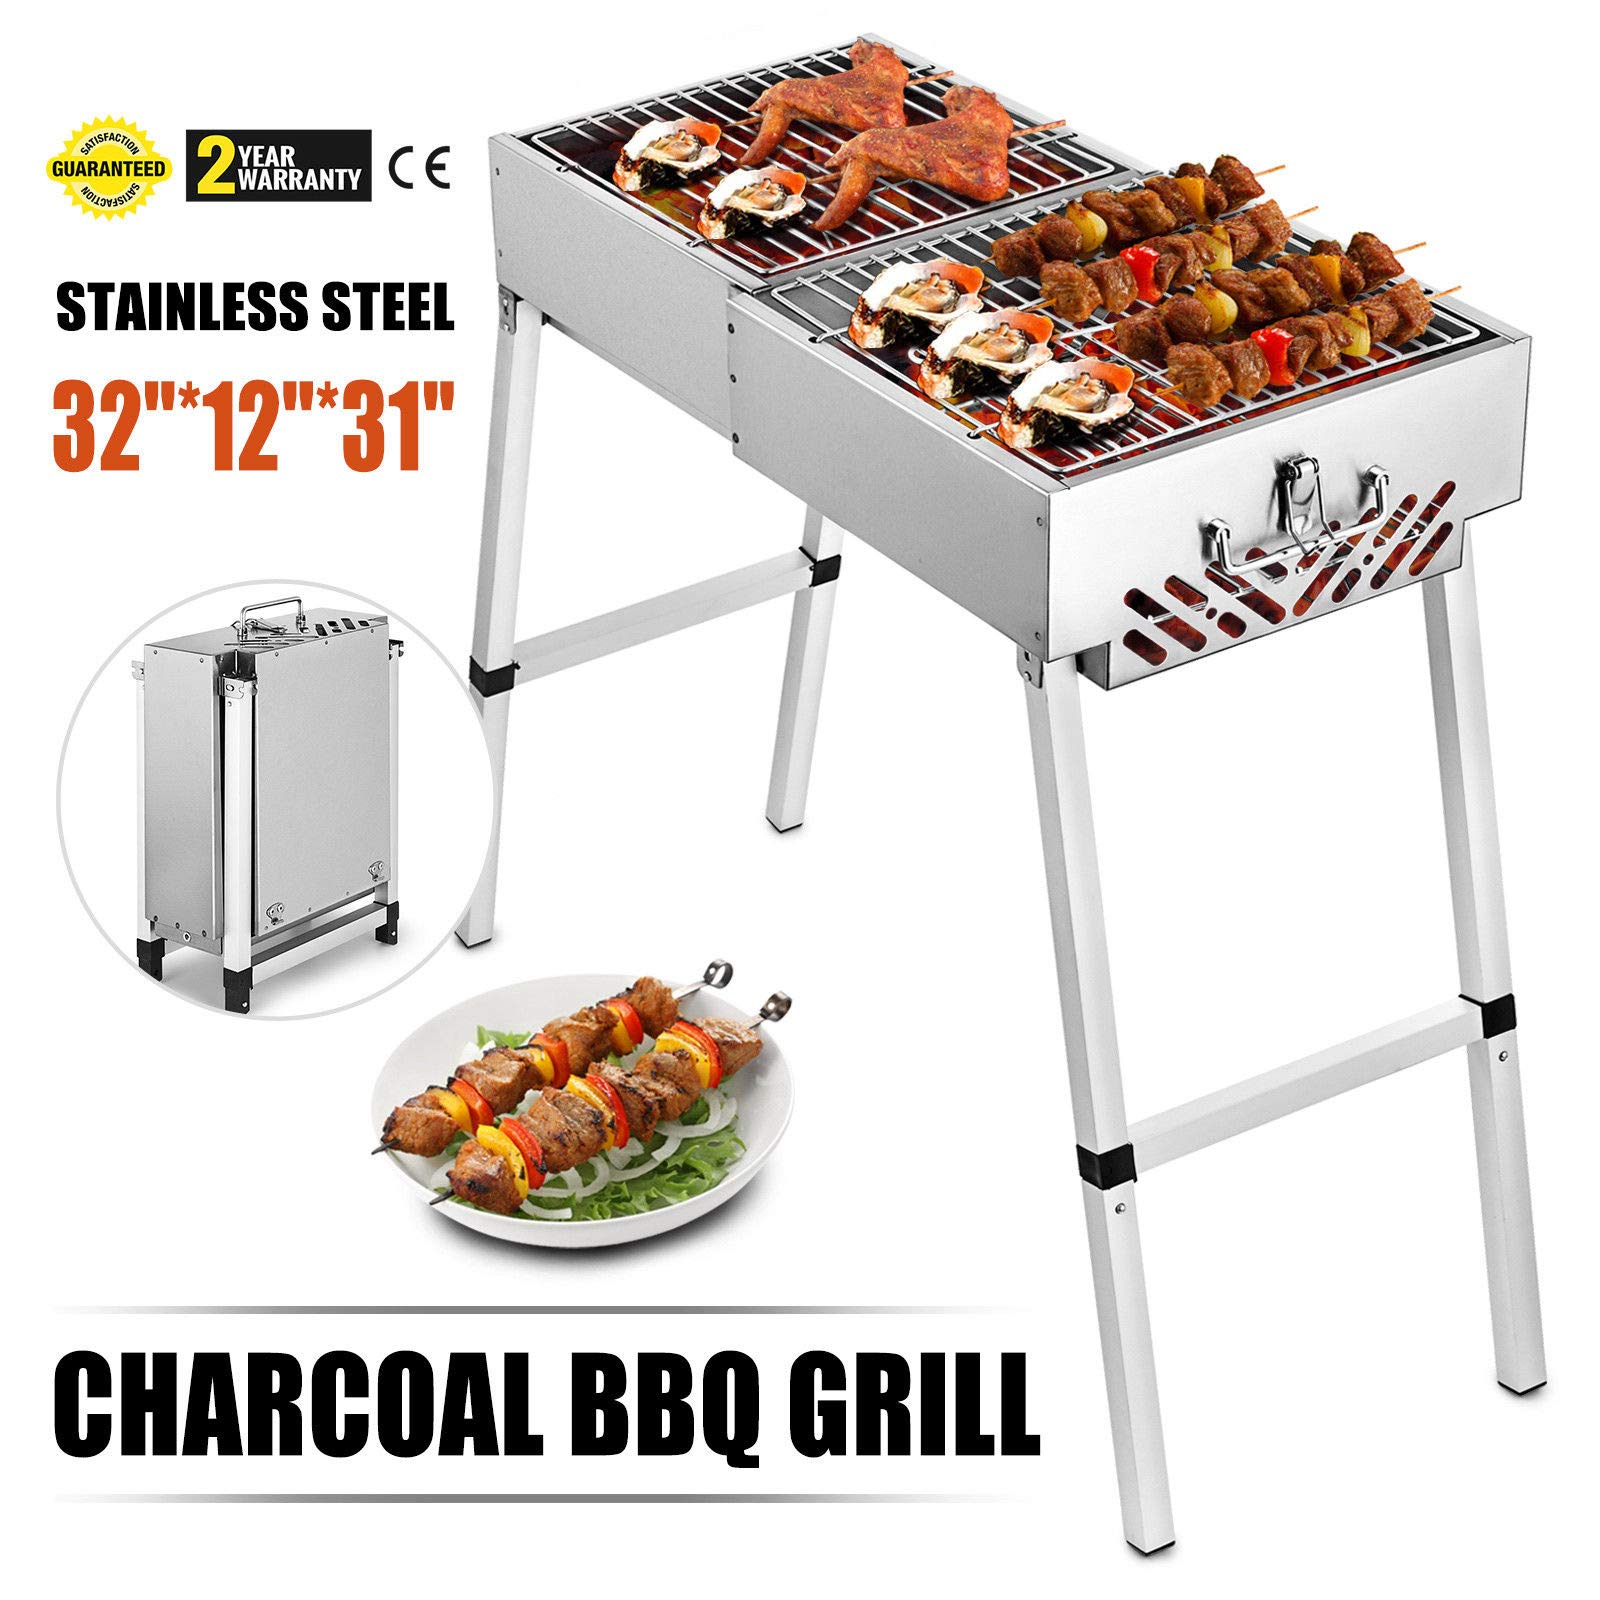 VEVOR Folded Portable Charcoal BBQ Grill Outdoor Barbecue Charcoal Stainless Steel Kebab Grill Folding Grill Portable Grill Perfect for Camping (32'' x 12'') by VEVOR